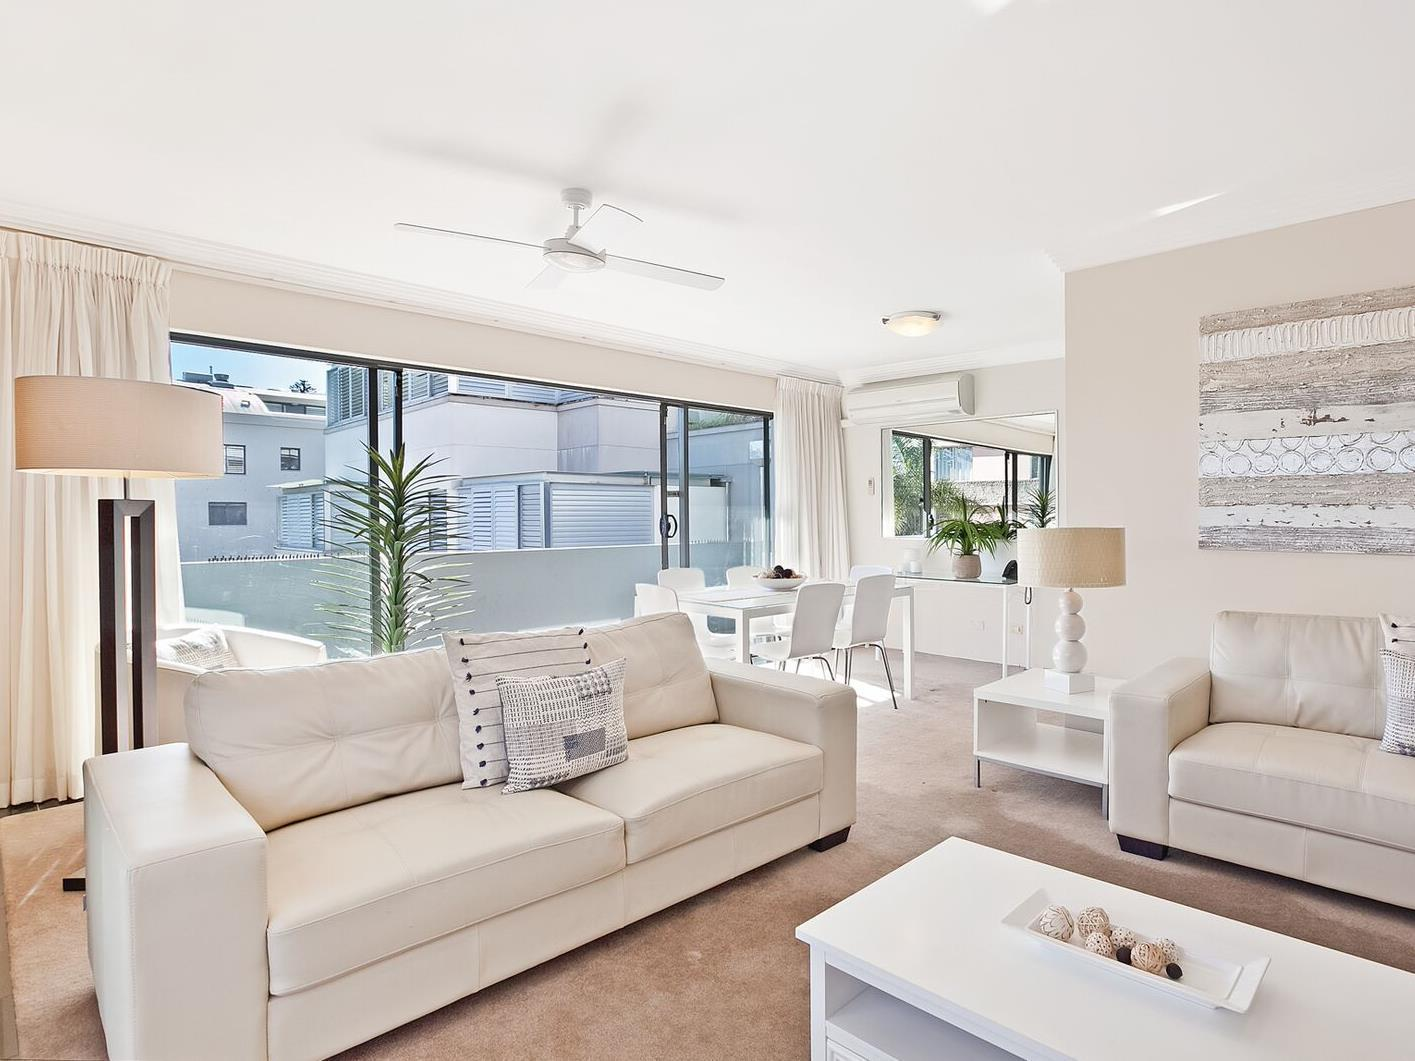 2 Bedroom Manly Surfside Holiday Apartments